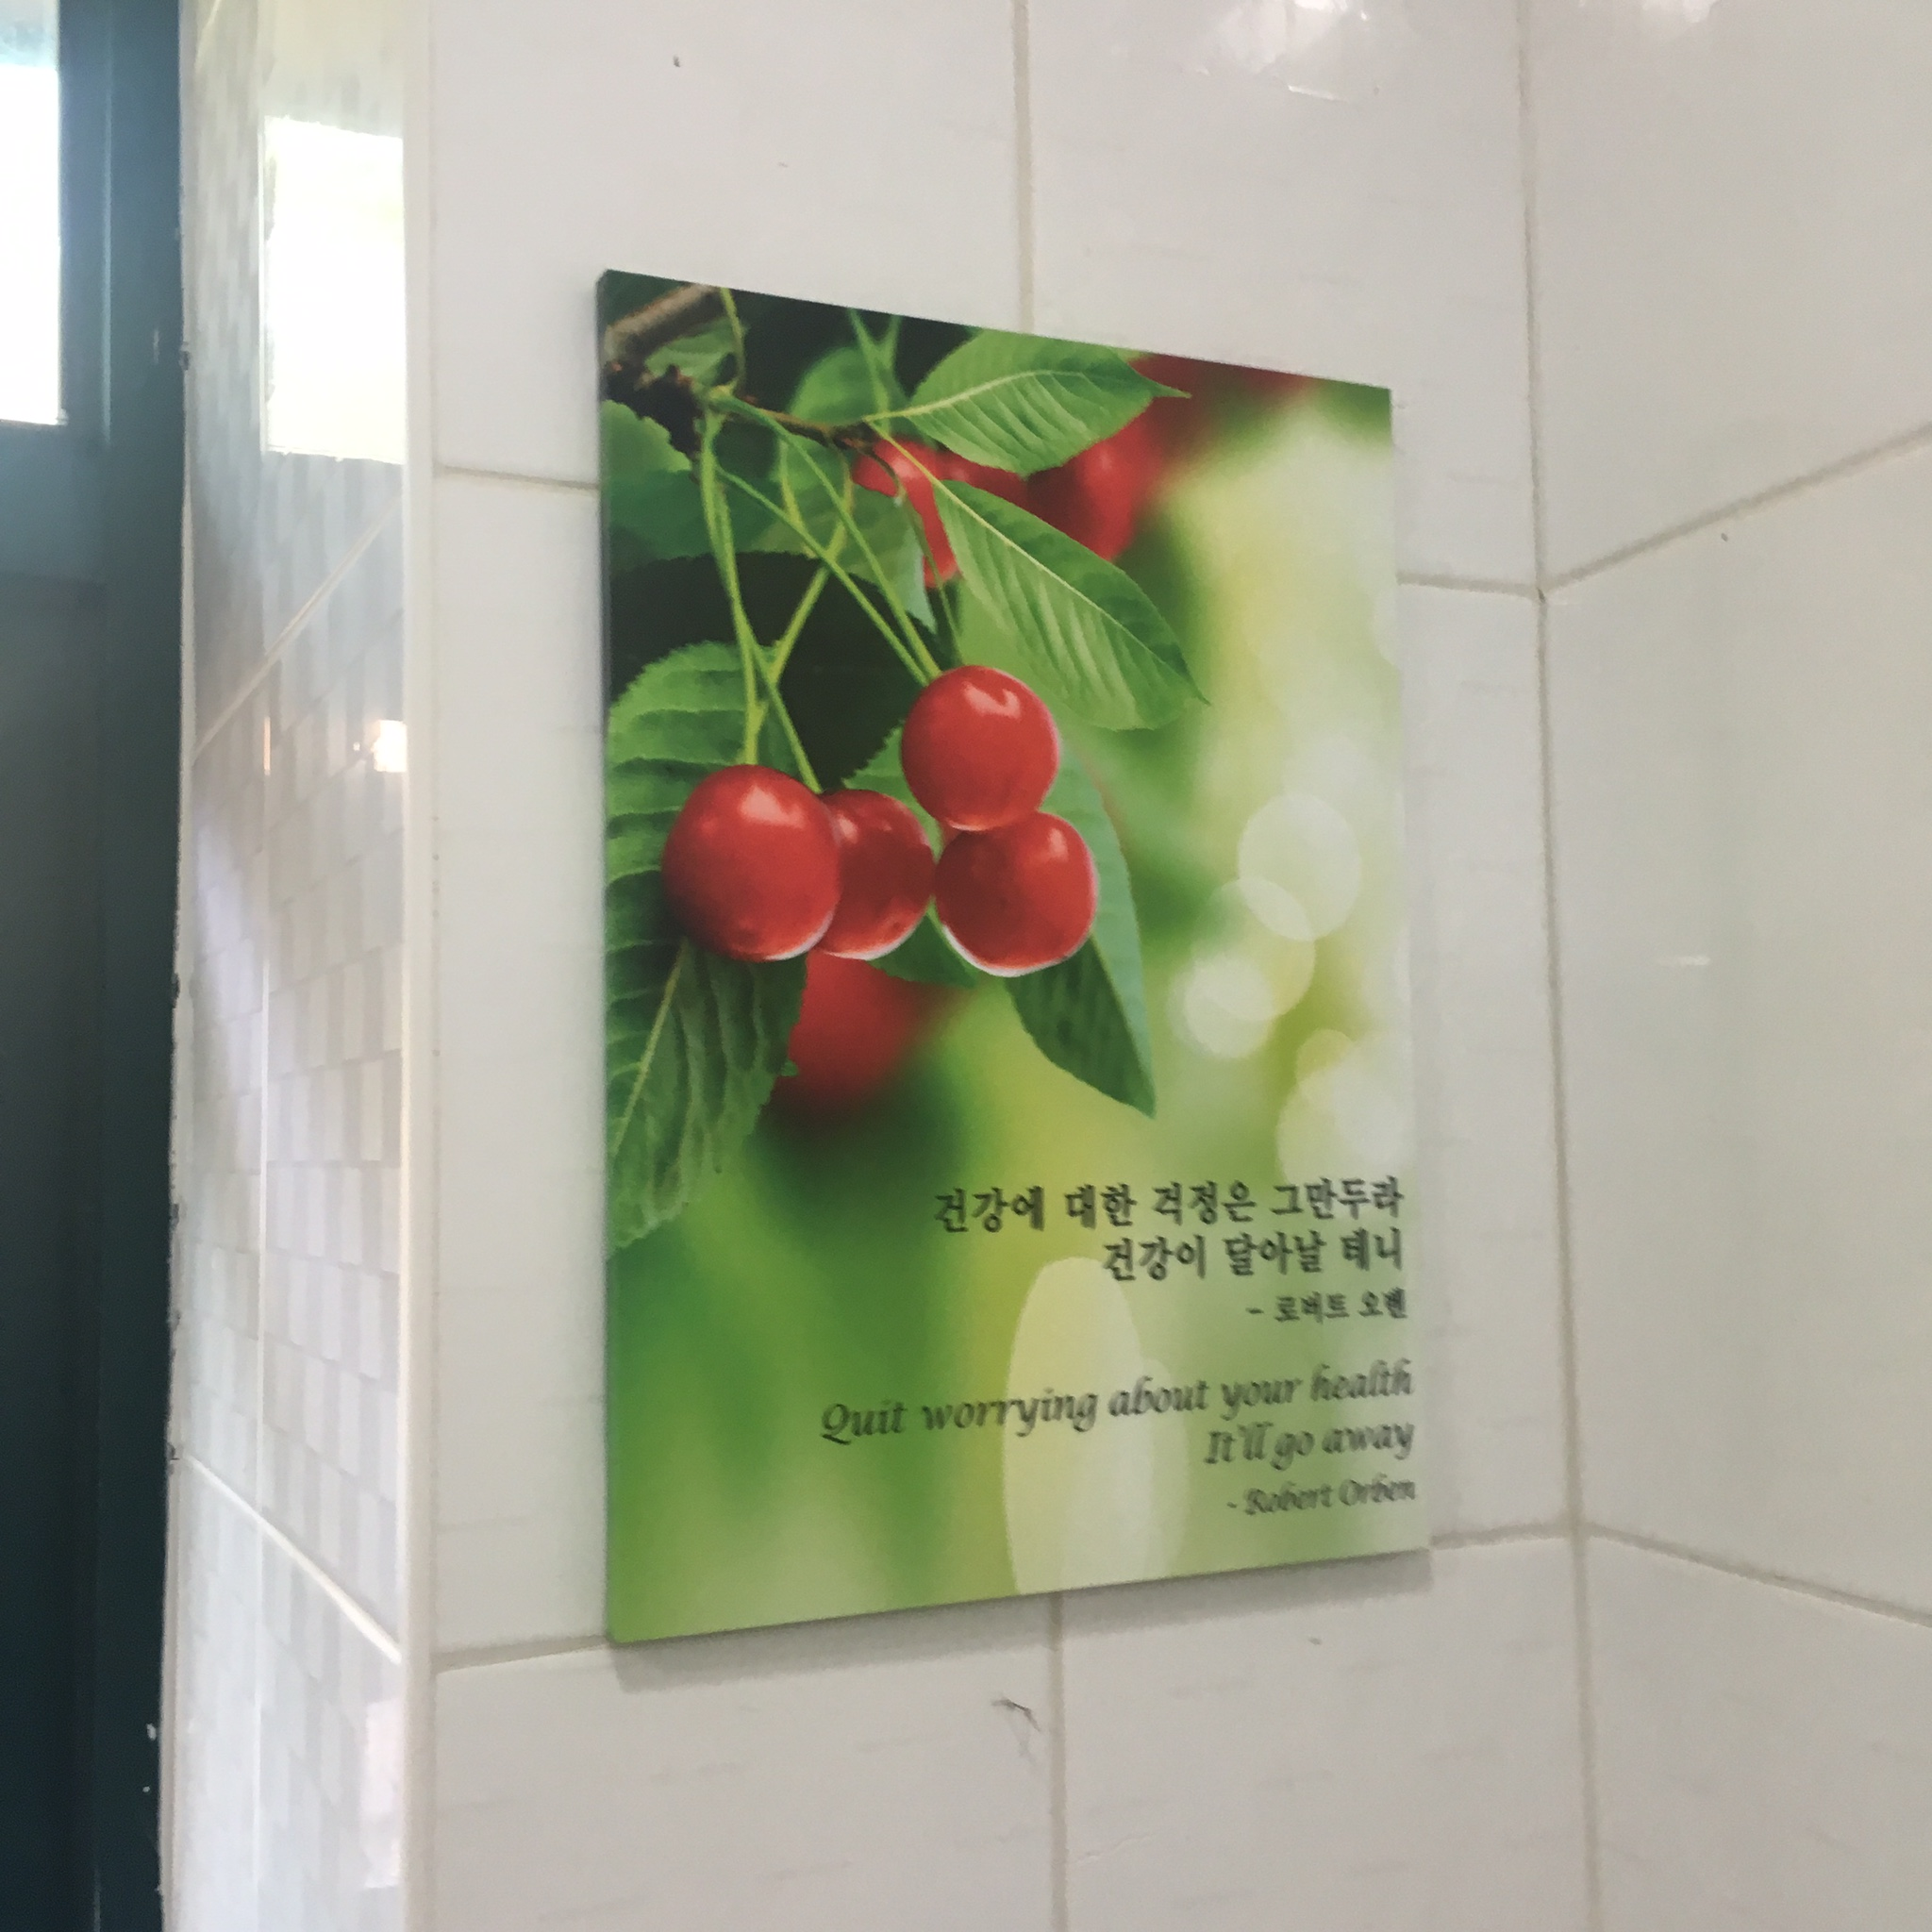 Urinal wisdom in the DMZ